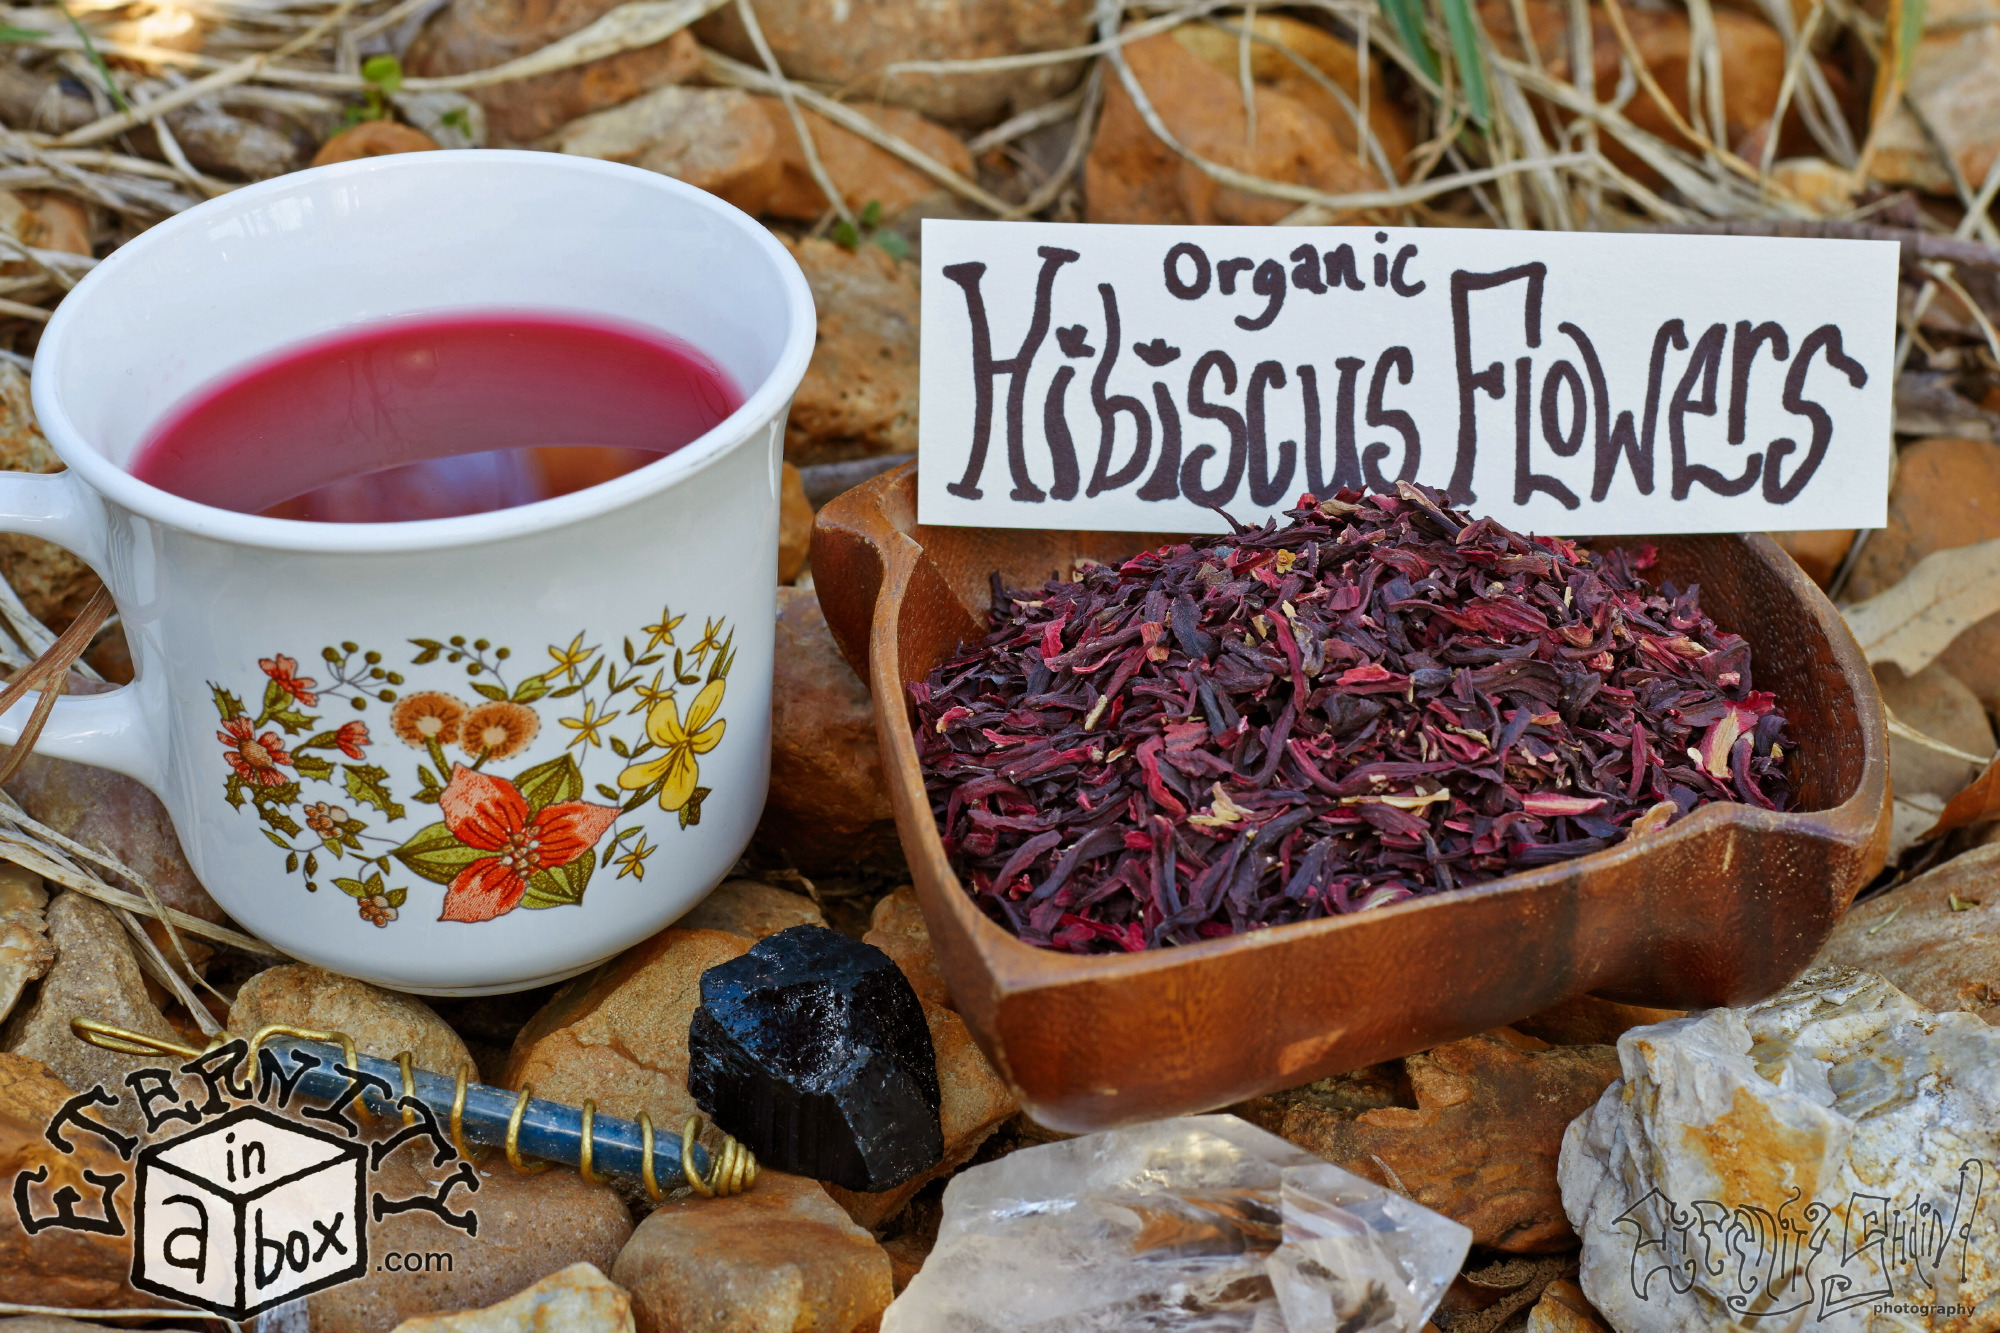 Hibiscus flowers organic eternity in a box botanicals hibiscus flowers organic izmirmasajfo